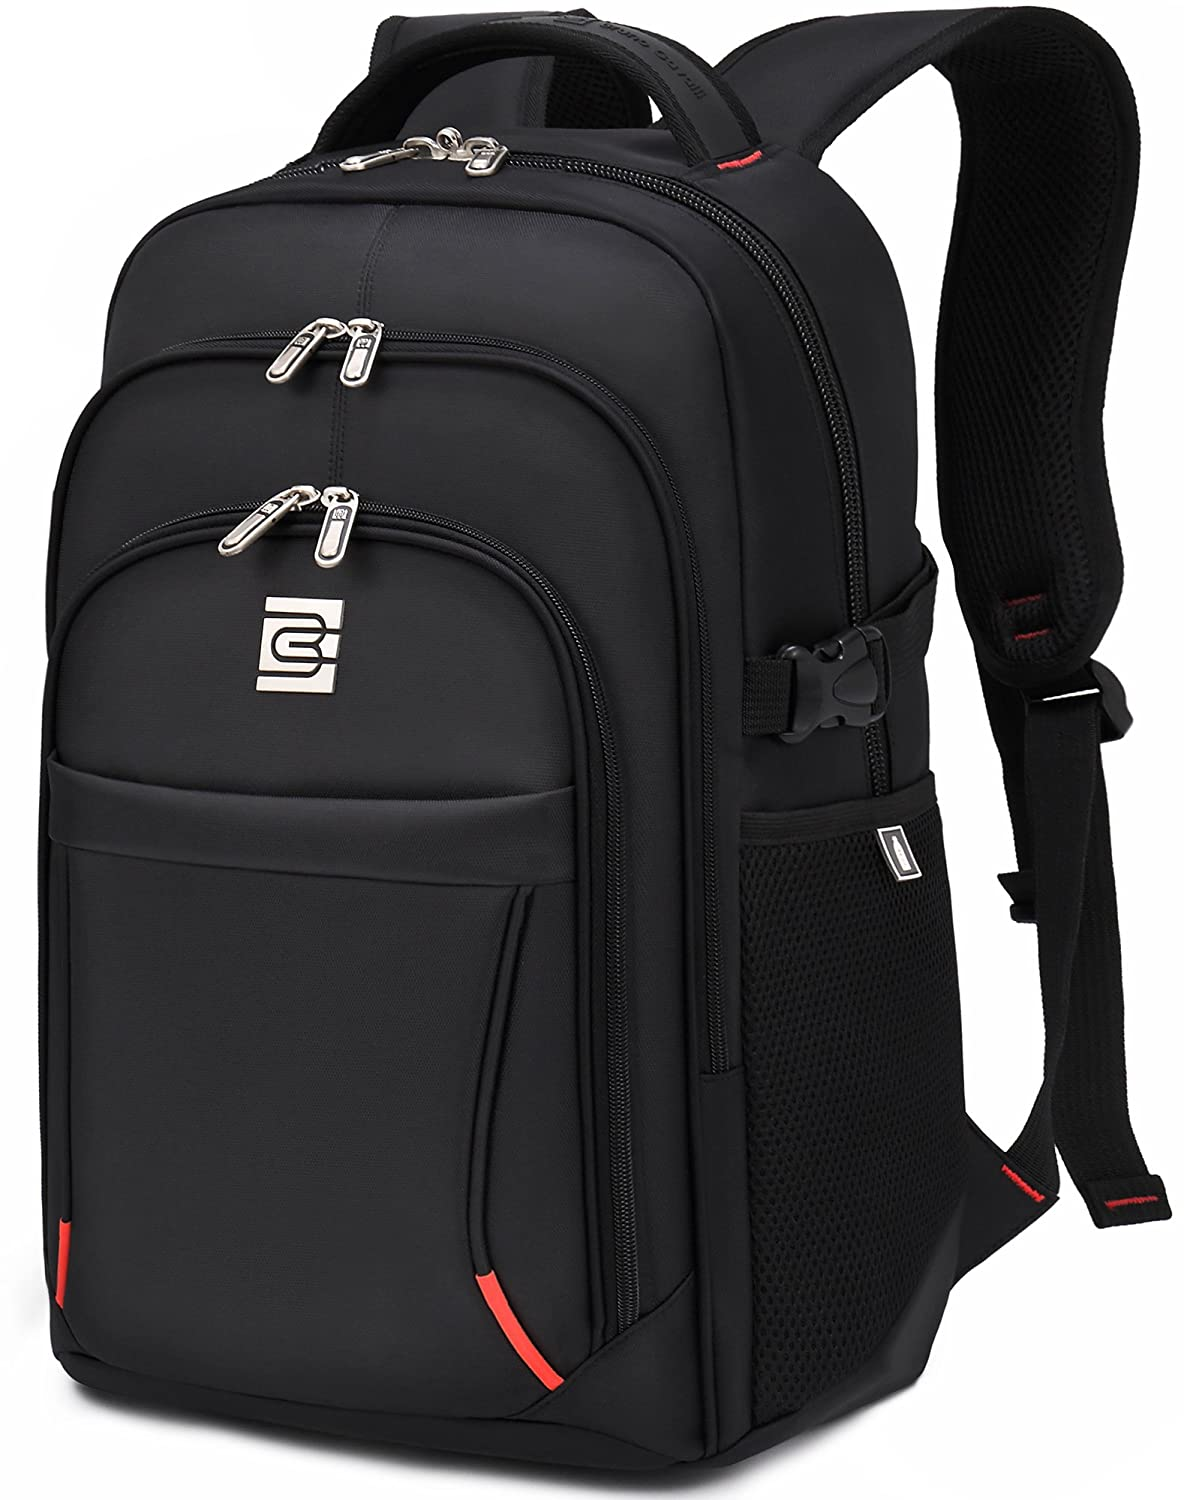 VEVESMUNDO Laptop Backpack 16IN College School Travel Business Outdoor Waterproof Daypack For 16IN Dell HP Lenovo Macbook Acer Men (BLACK FOR 16 INCHES LAPTOP) 85%OFF